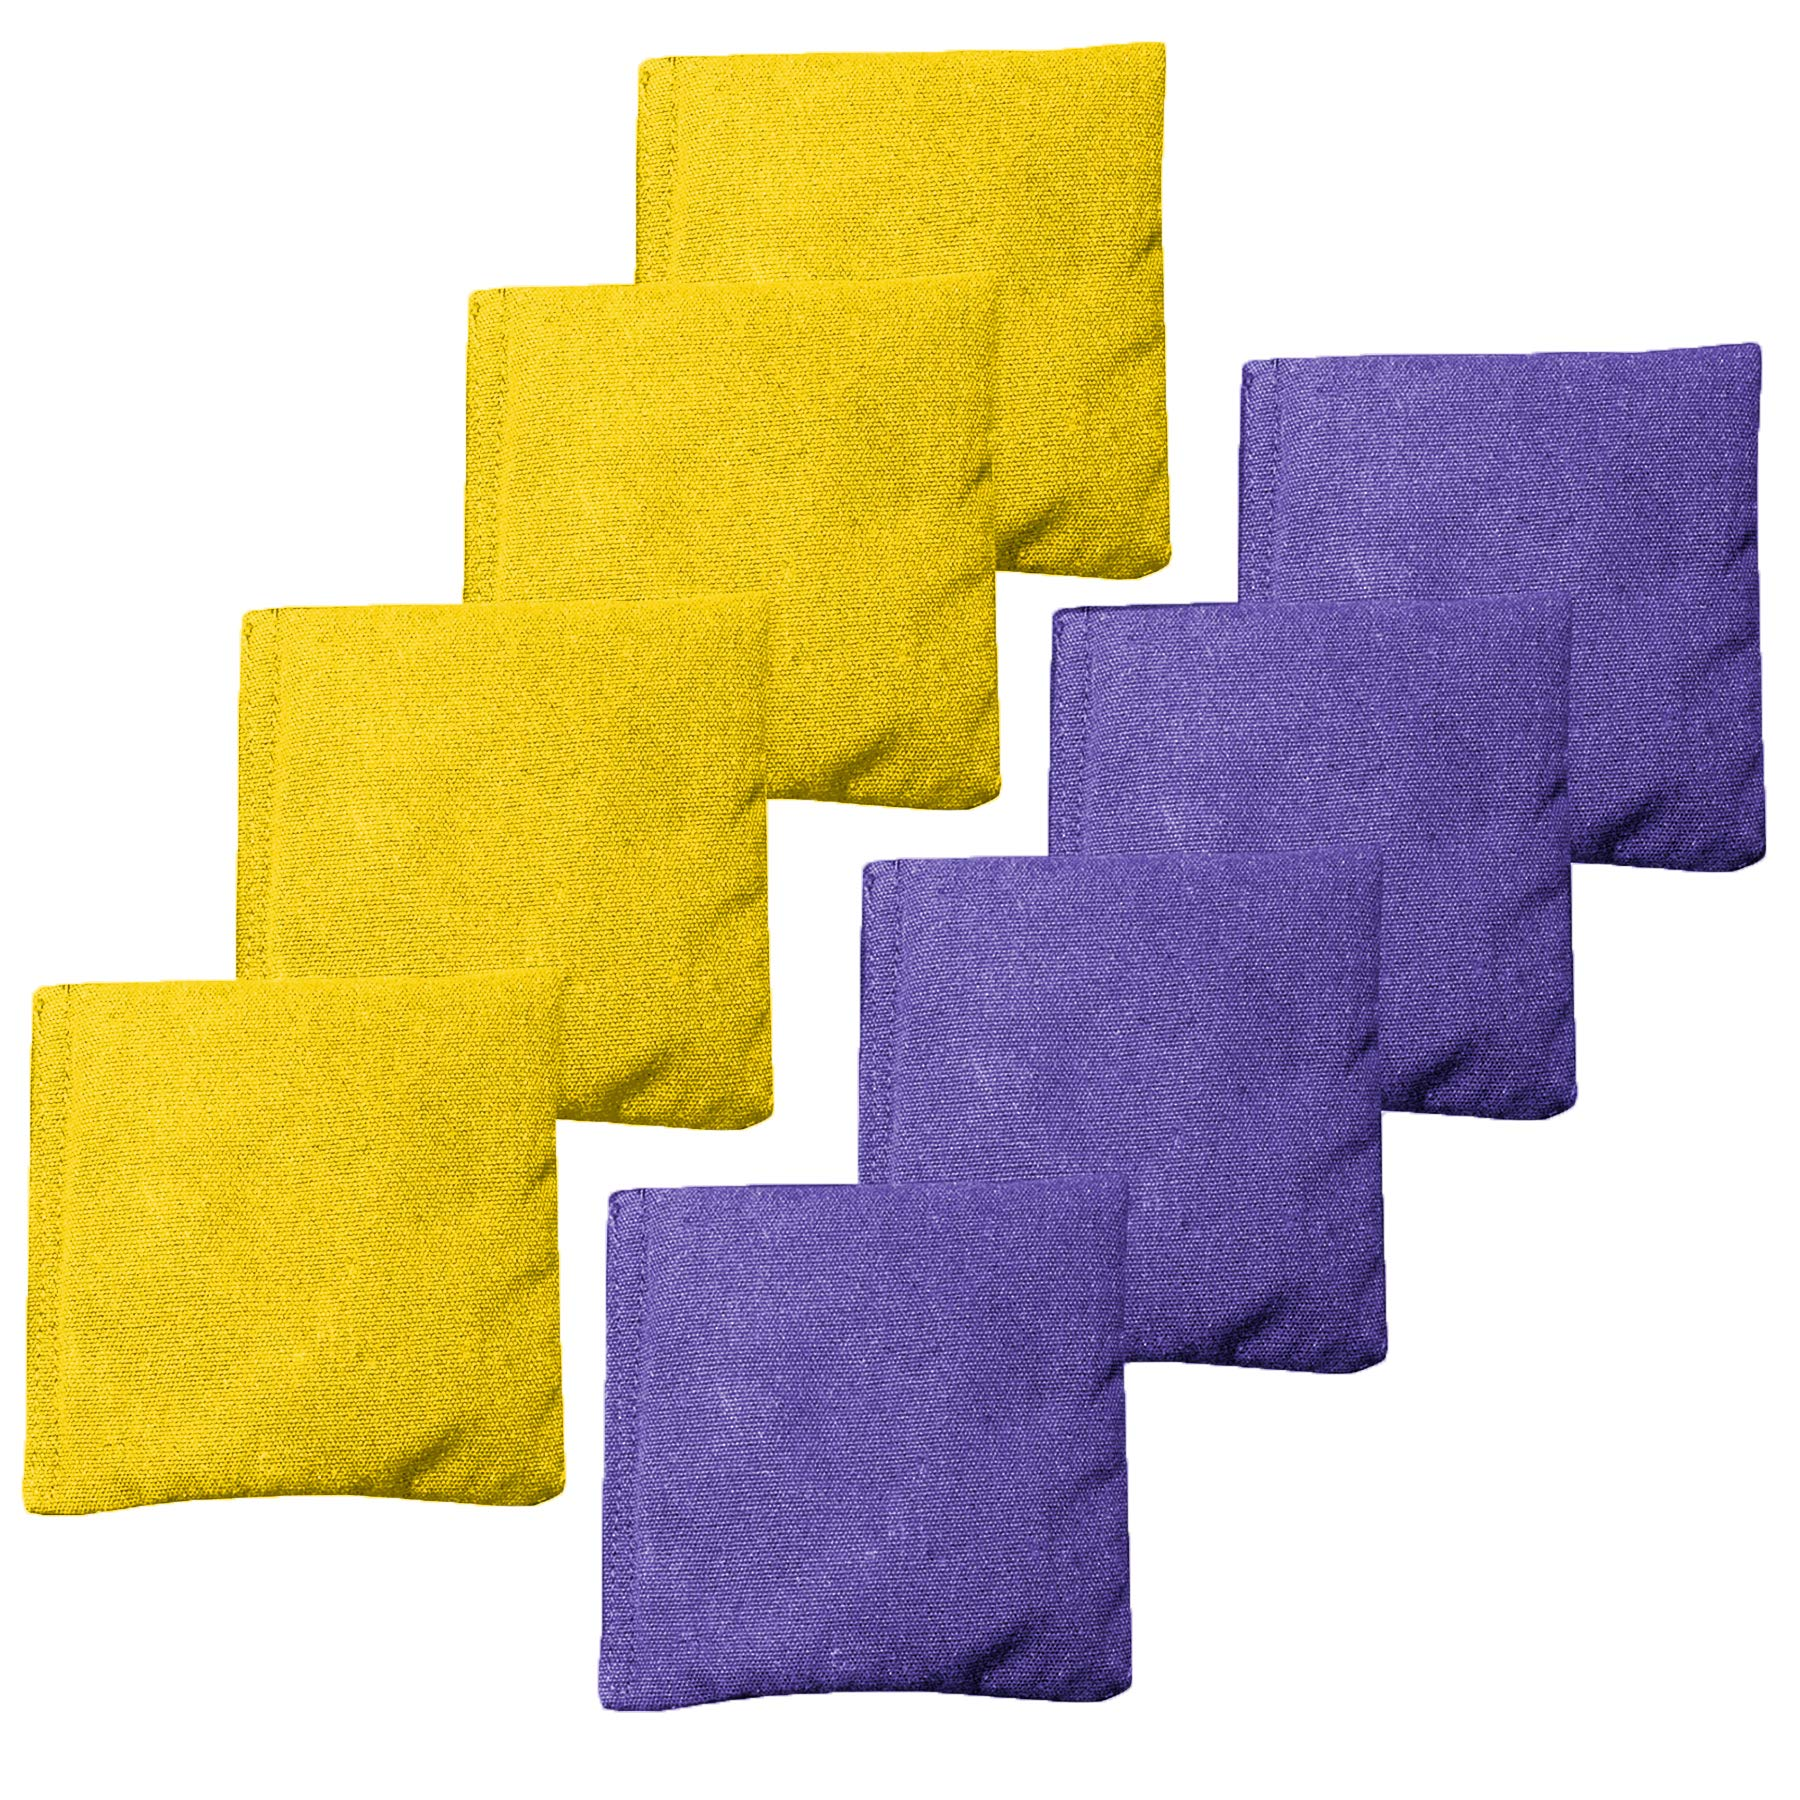 Weather Resistant Cornhole Bean Bags Set of 8 - Regulation Size & Weight - Purple & Yellow by Play Platoon